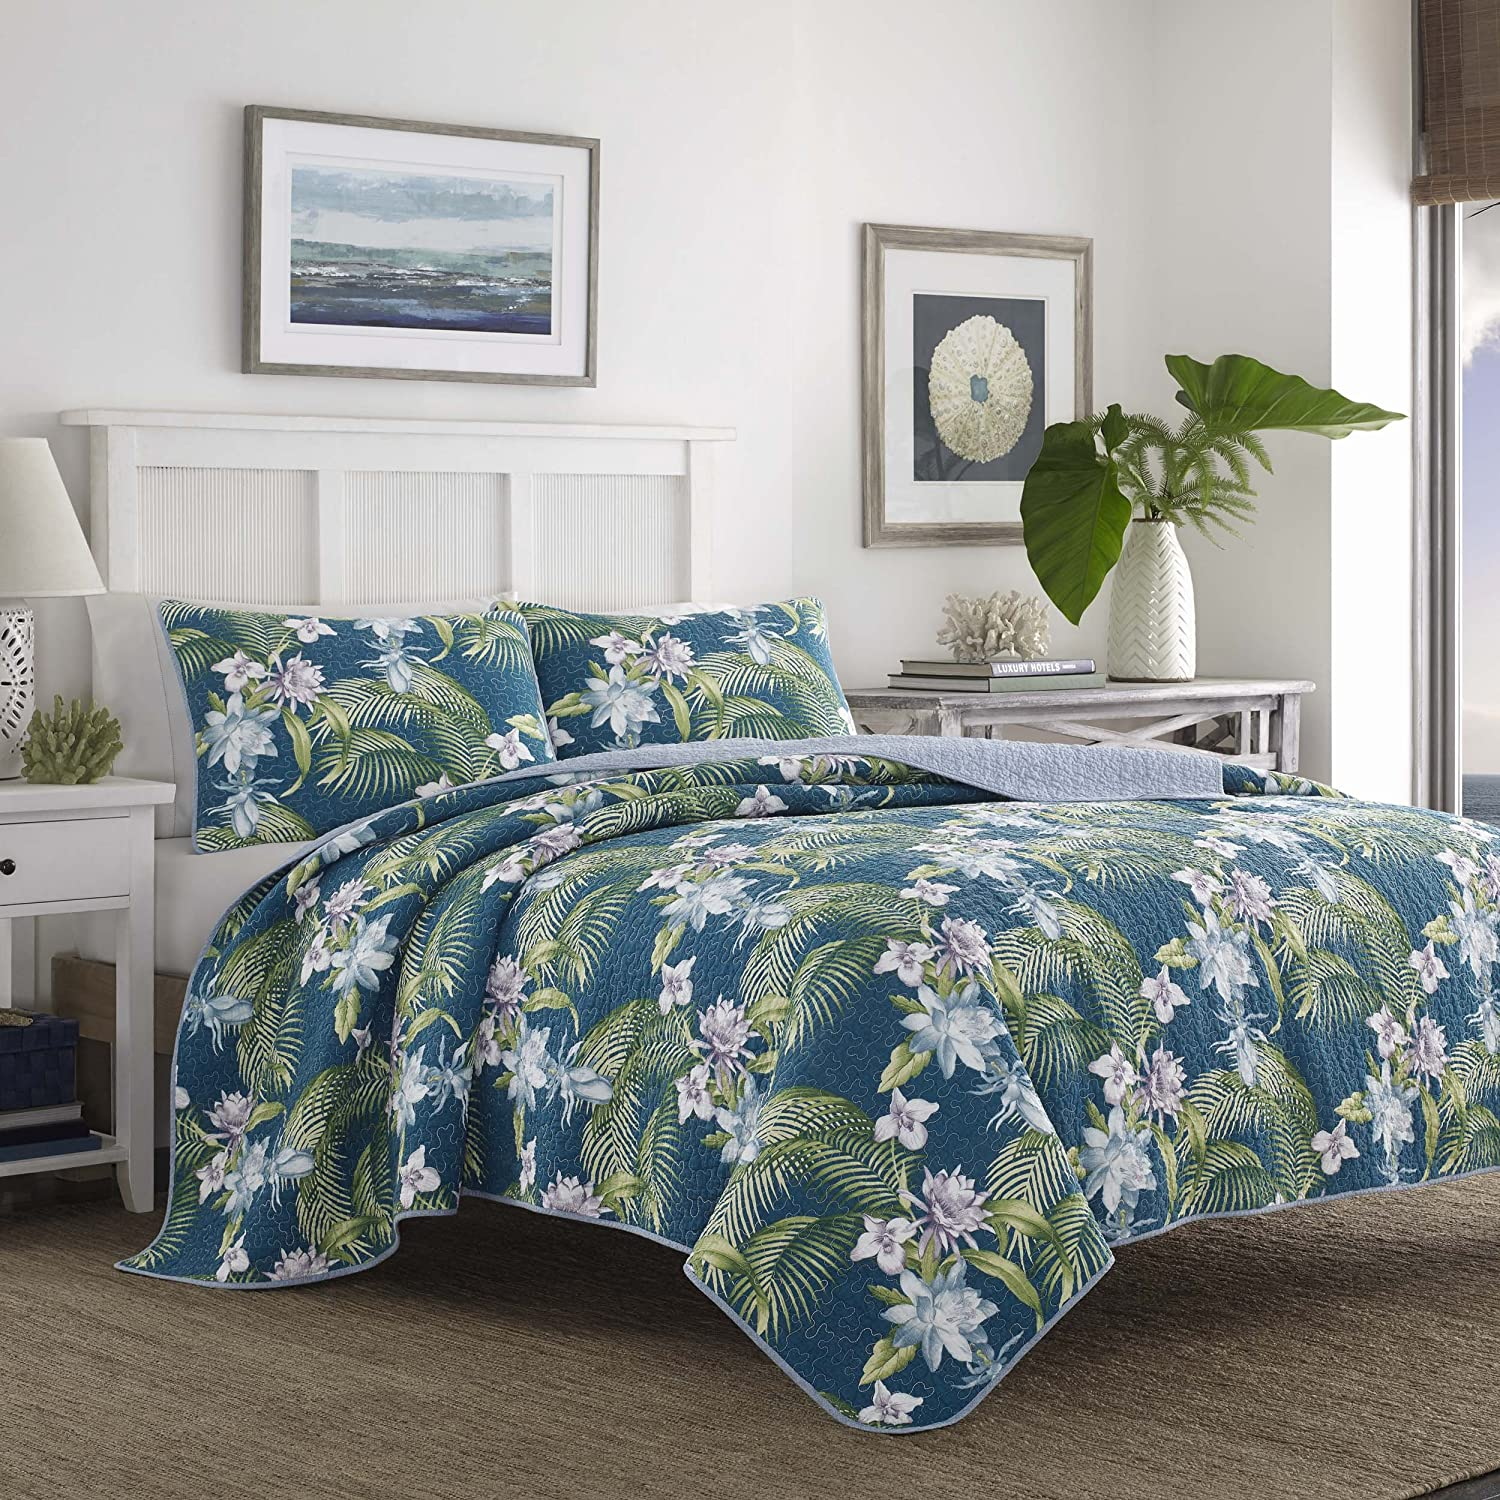 Tommy bahama bedding sets ease bedding with style tommy bahama southern breeze quilt set fullqueen dark blue gumiabroncs Image collections